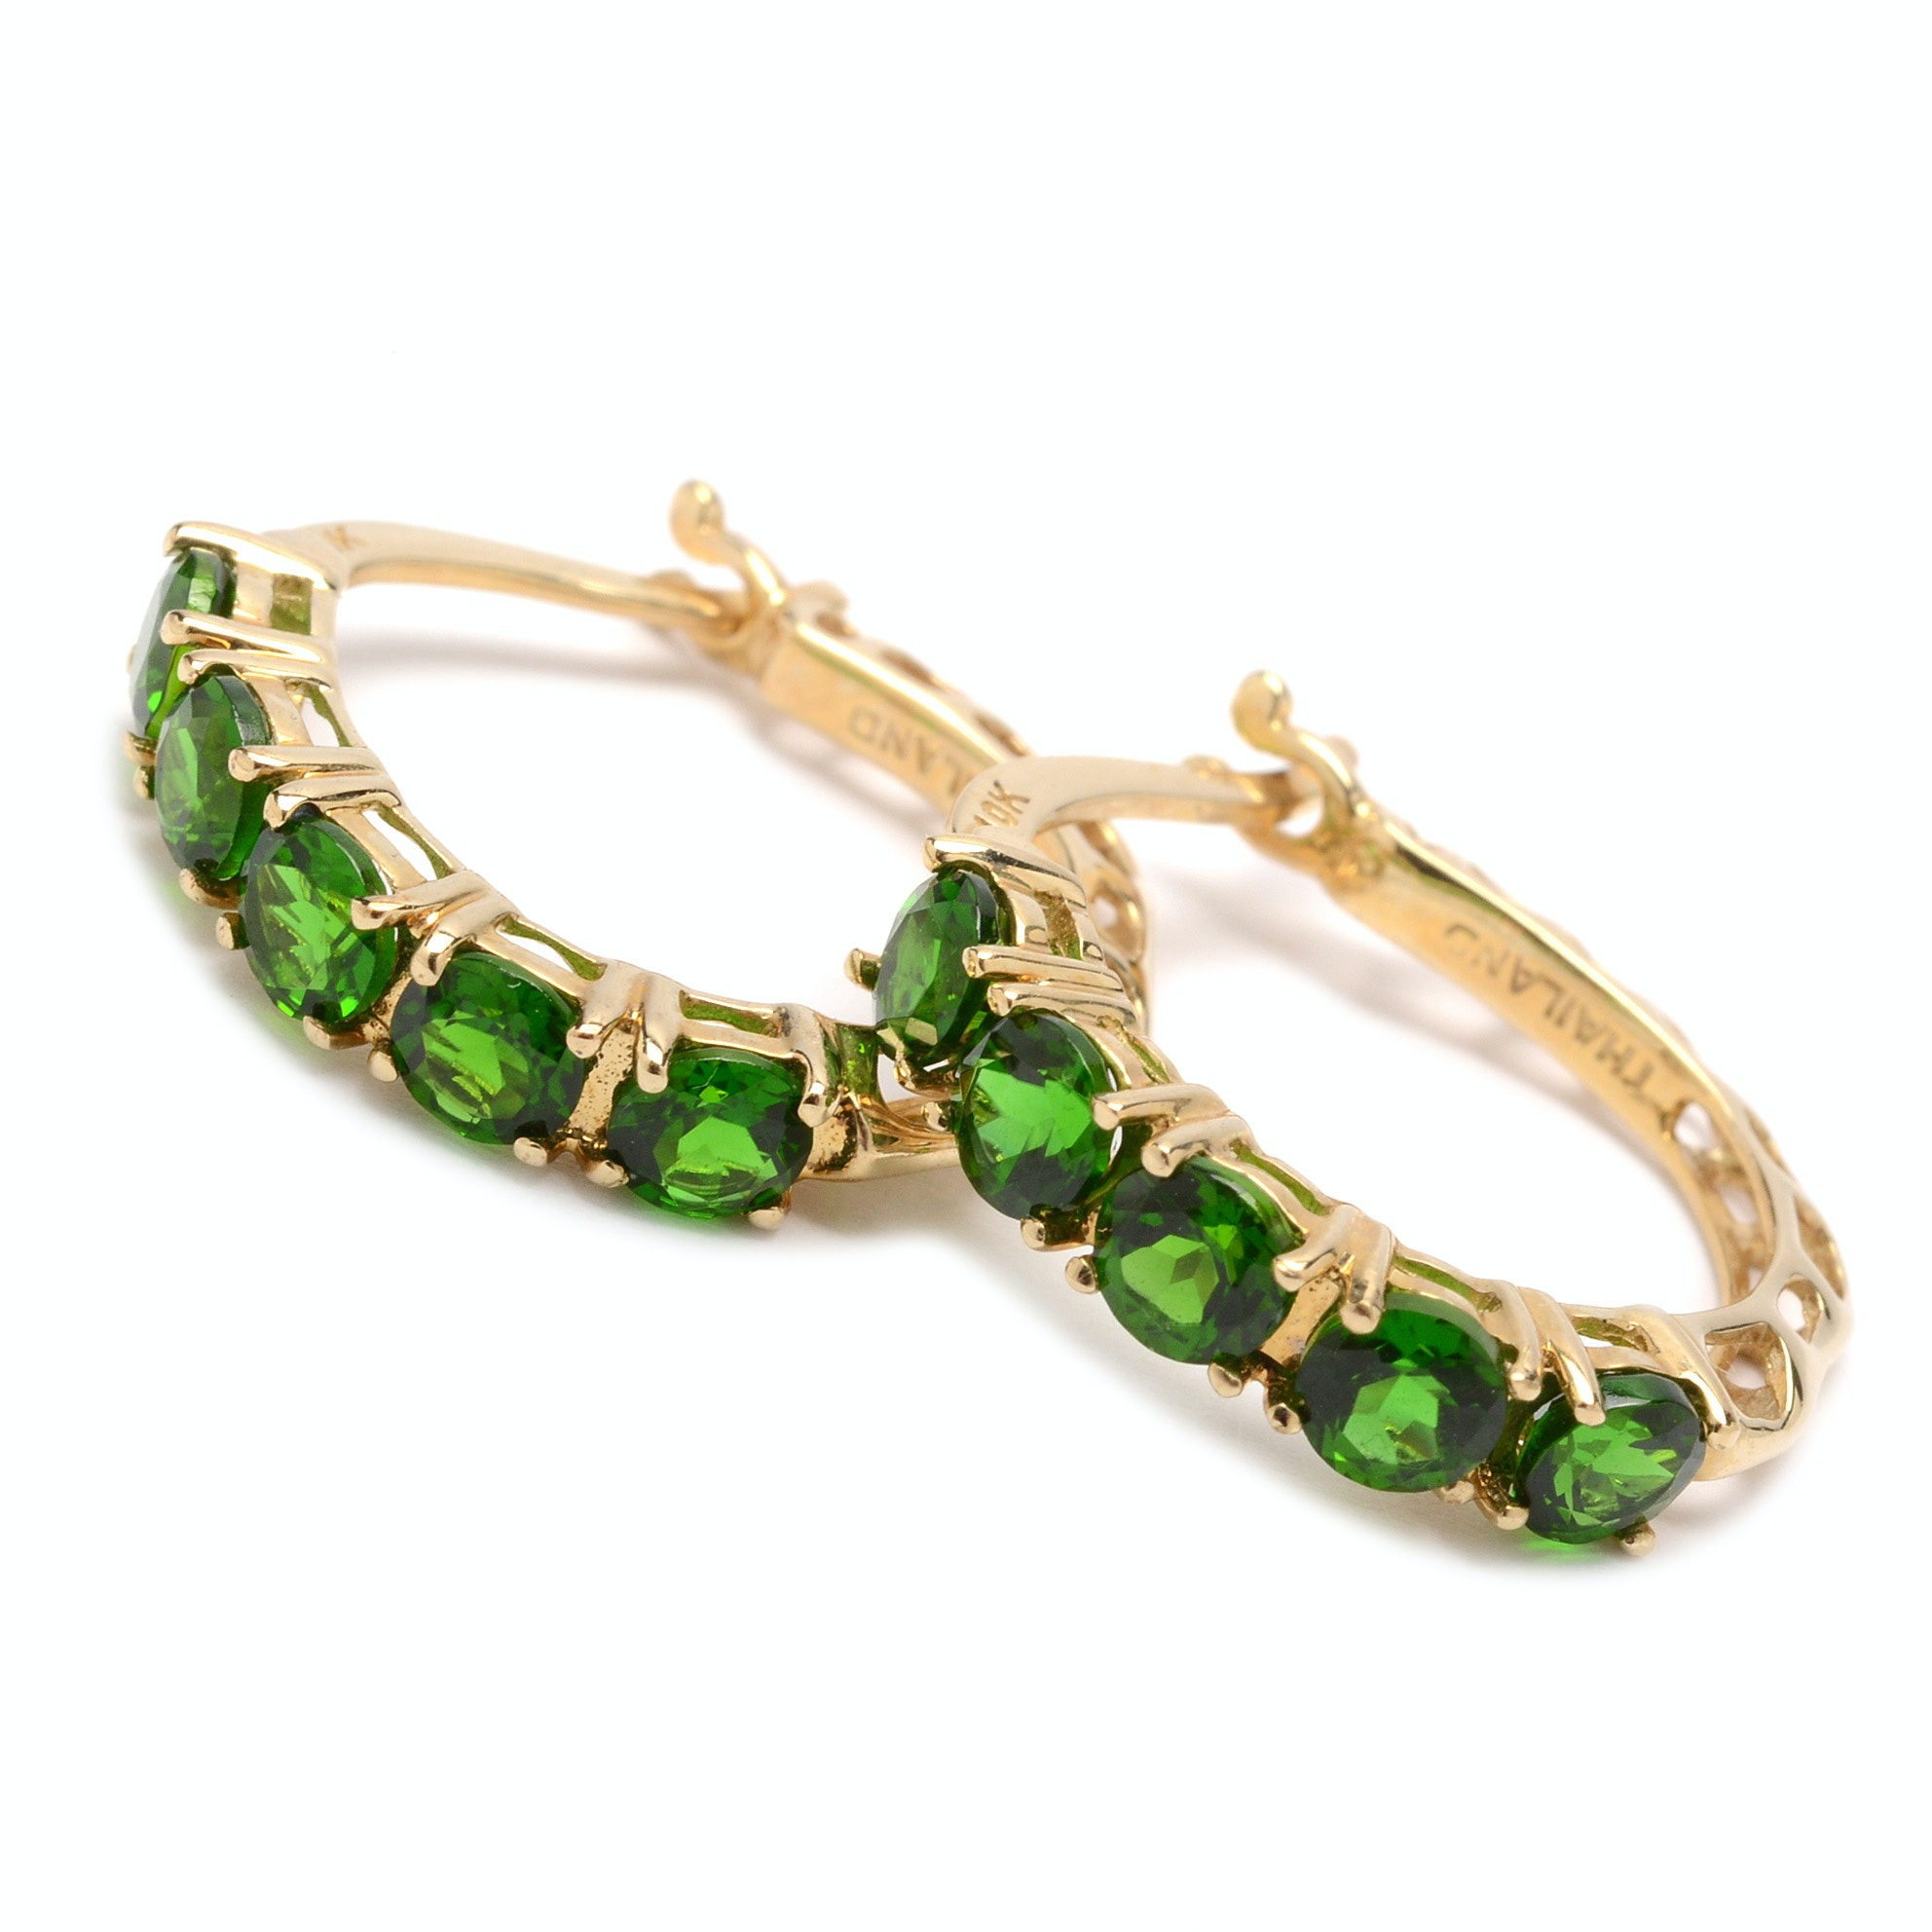 10K Yellow Gold Chrome Diopside Earrings